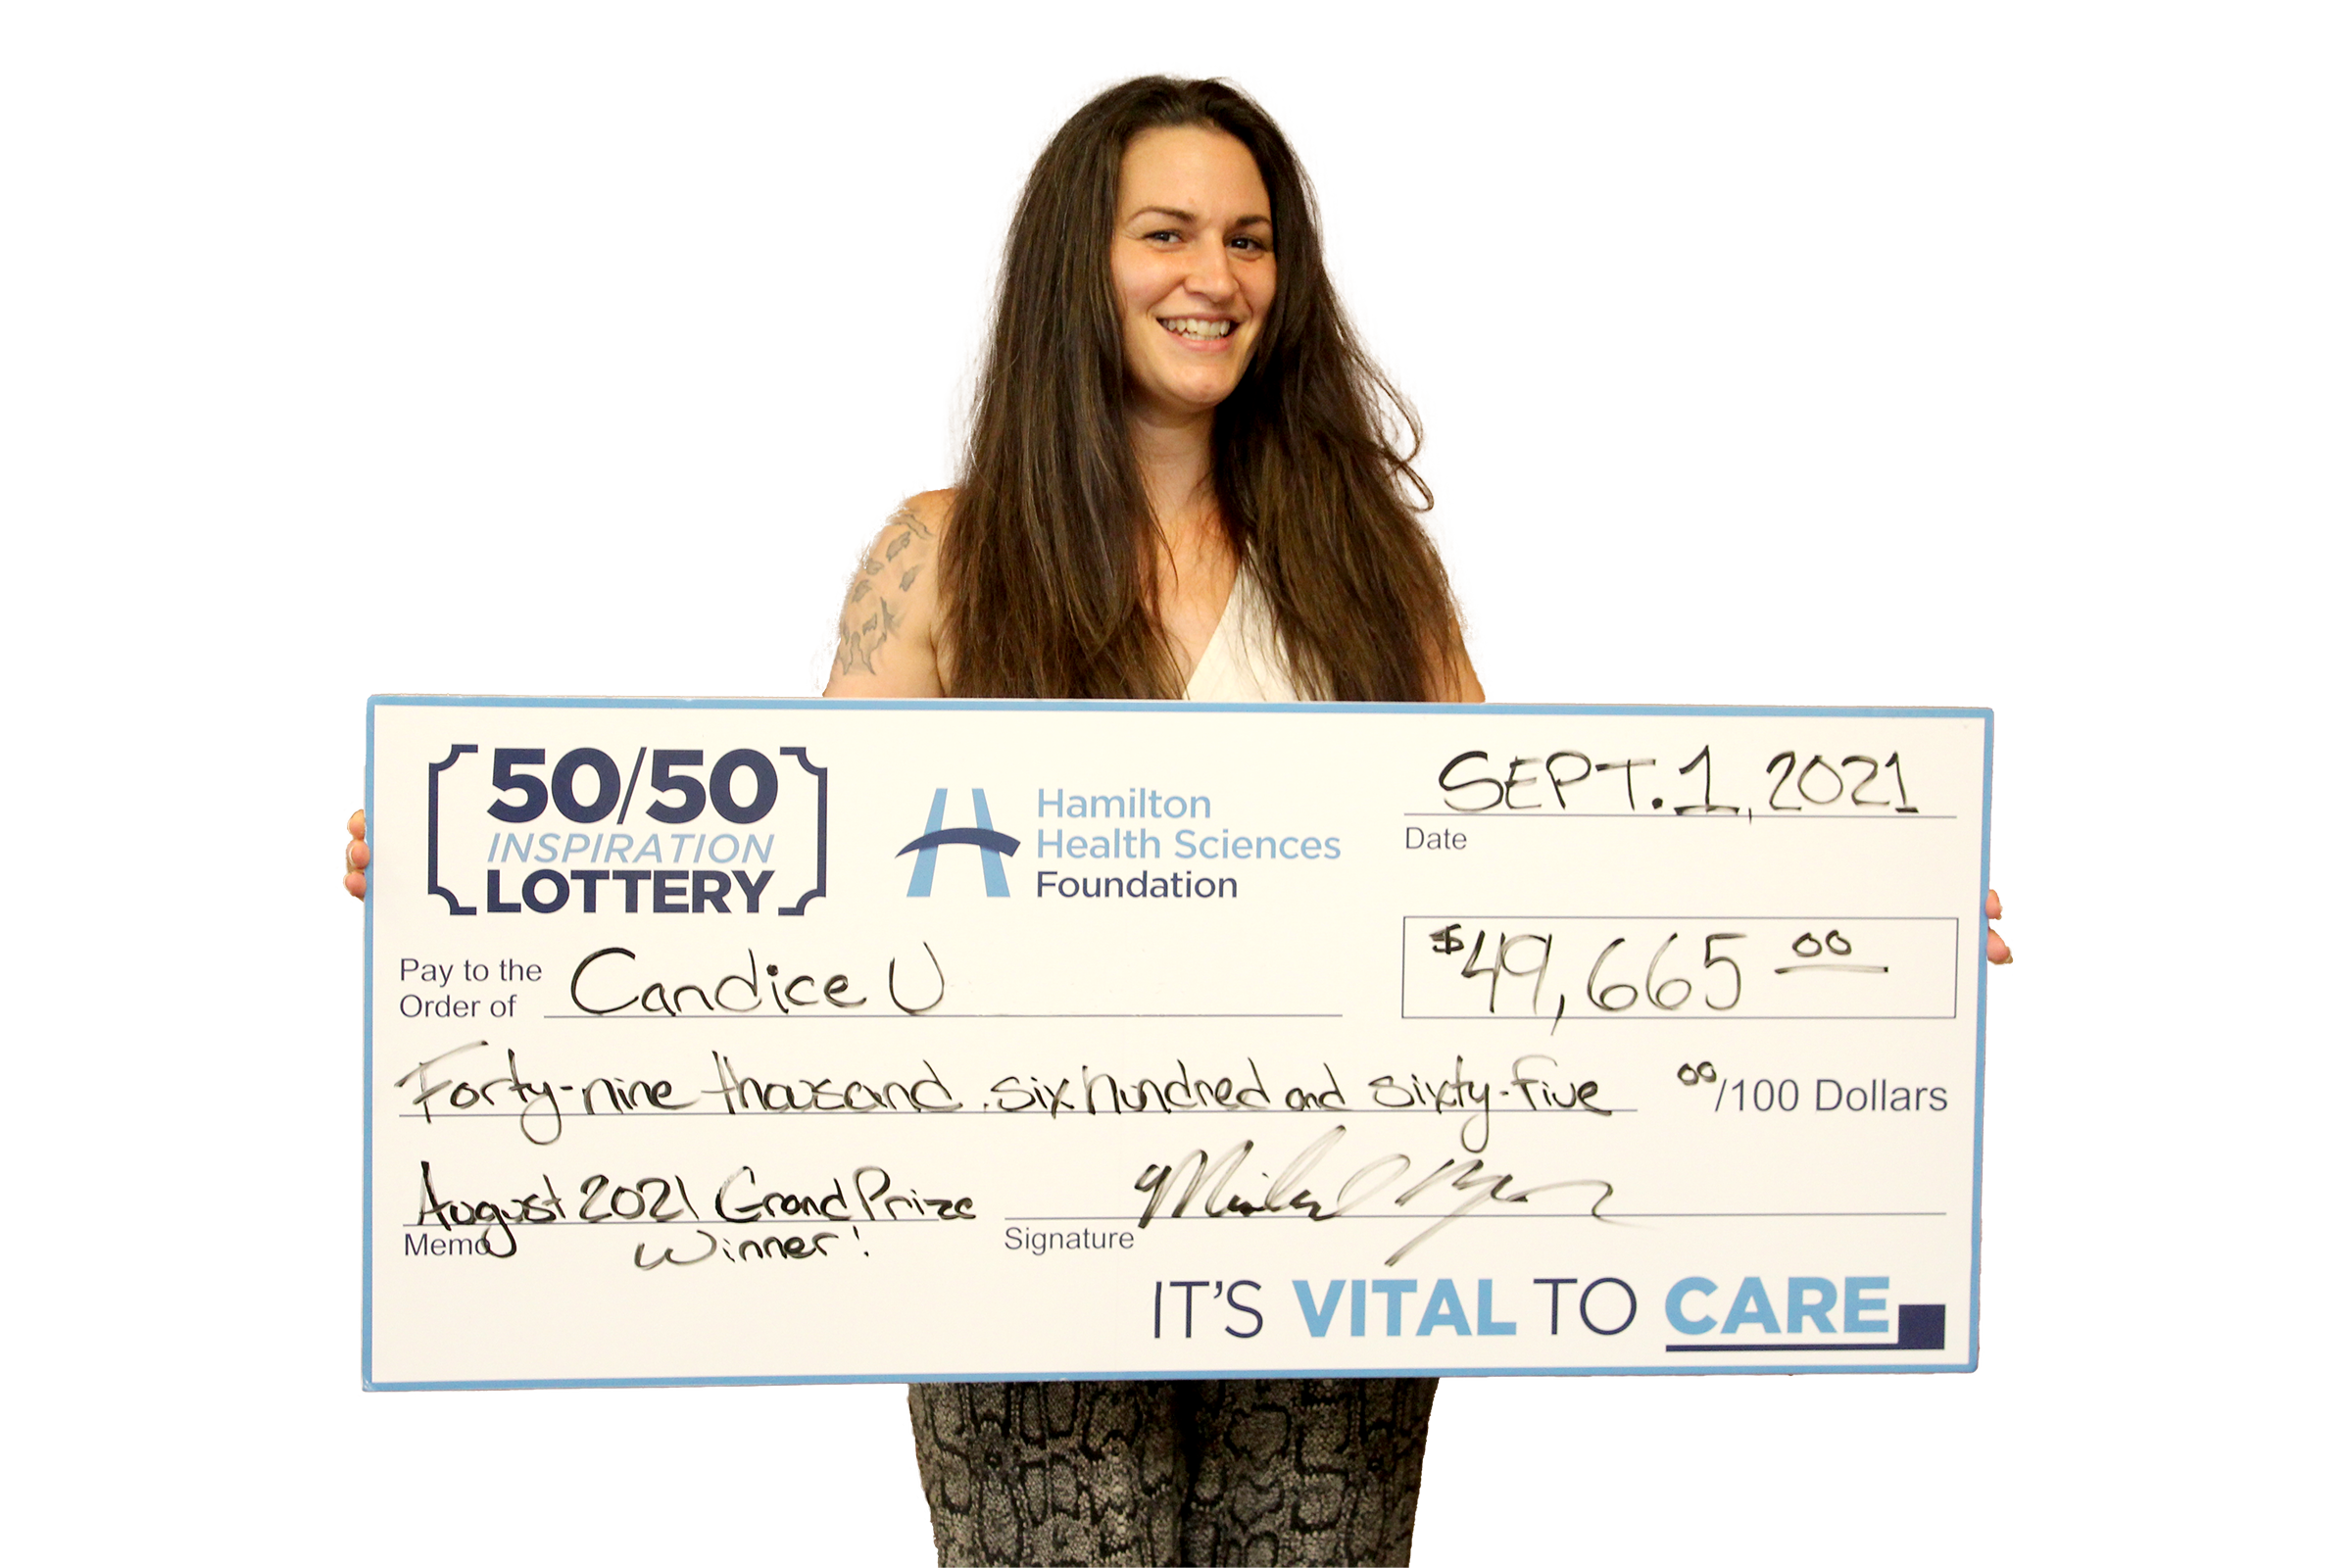 Inspiration Lottery winner Candace U. with her giant cheque.